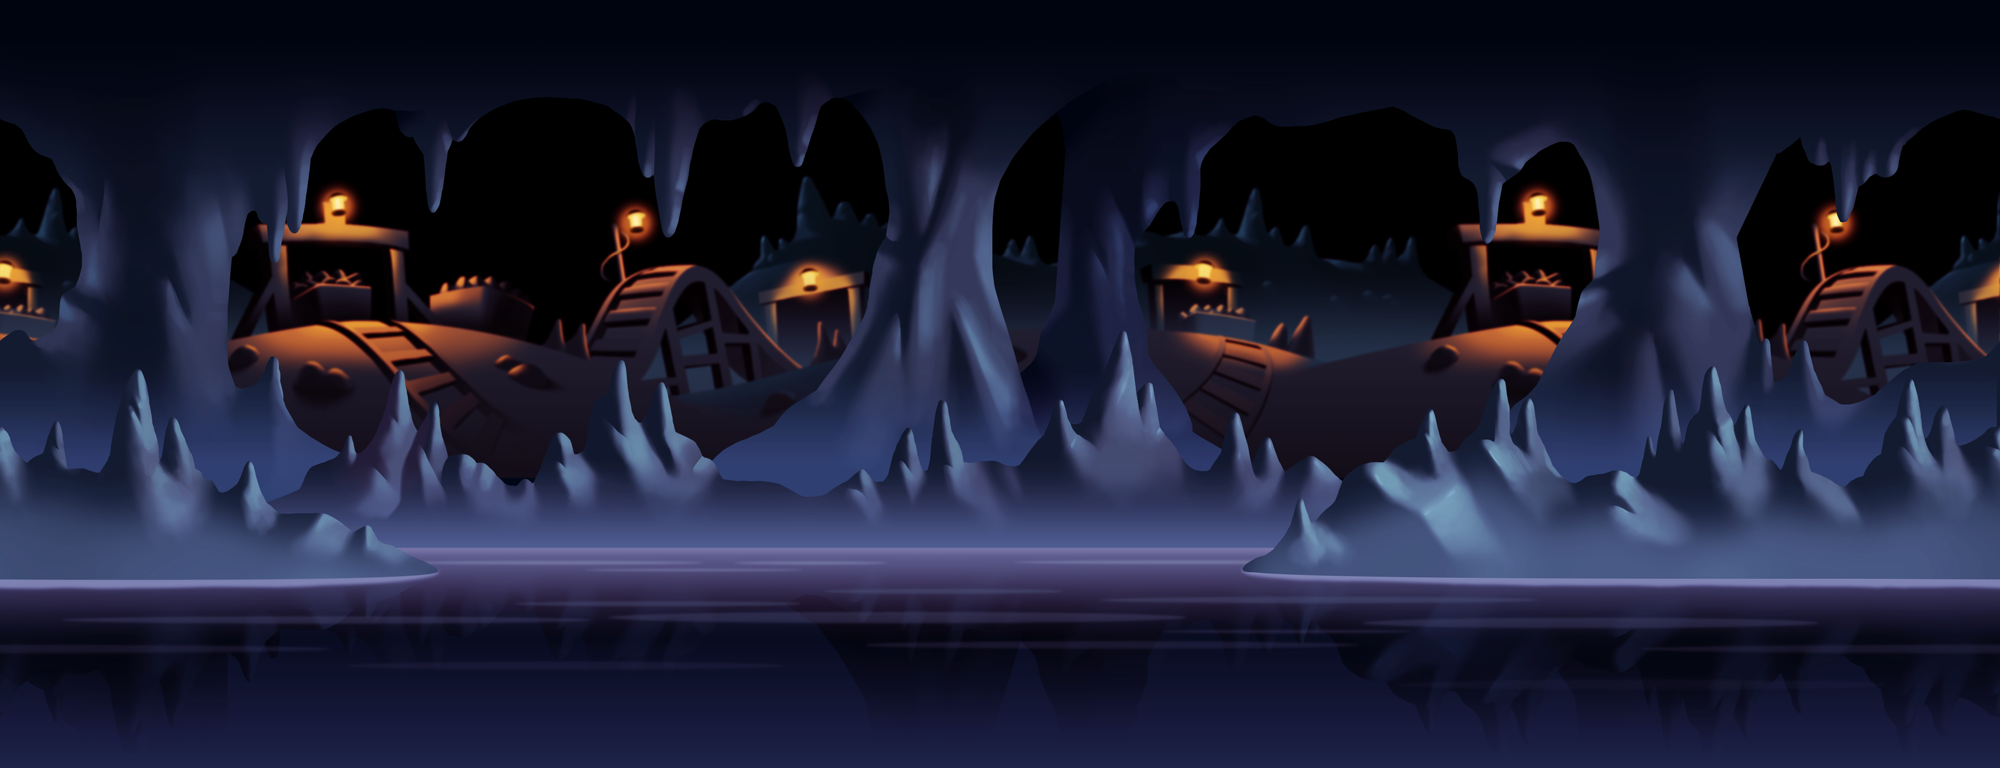 Preview of final background painting.